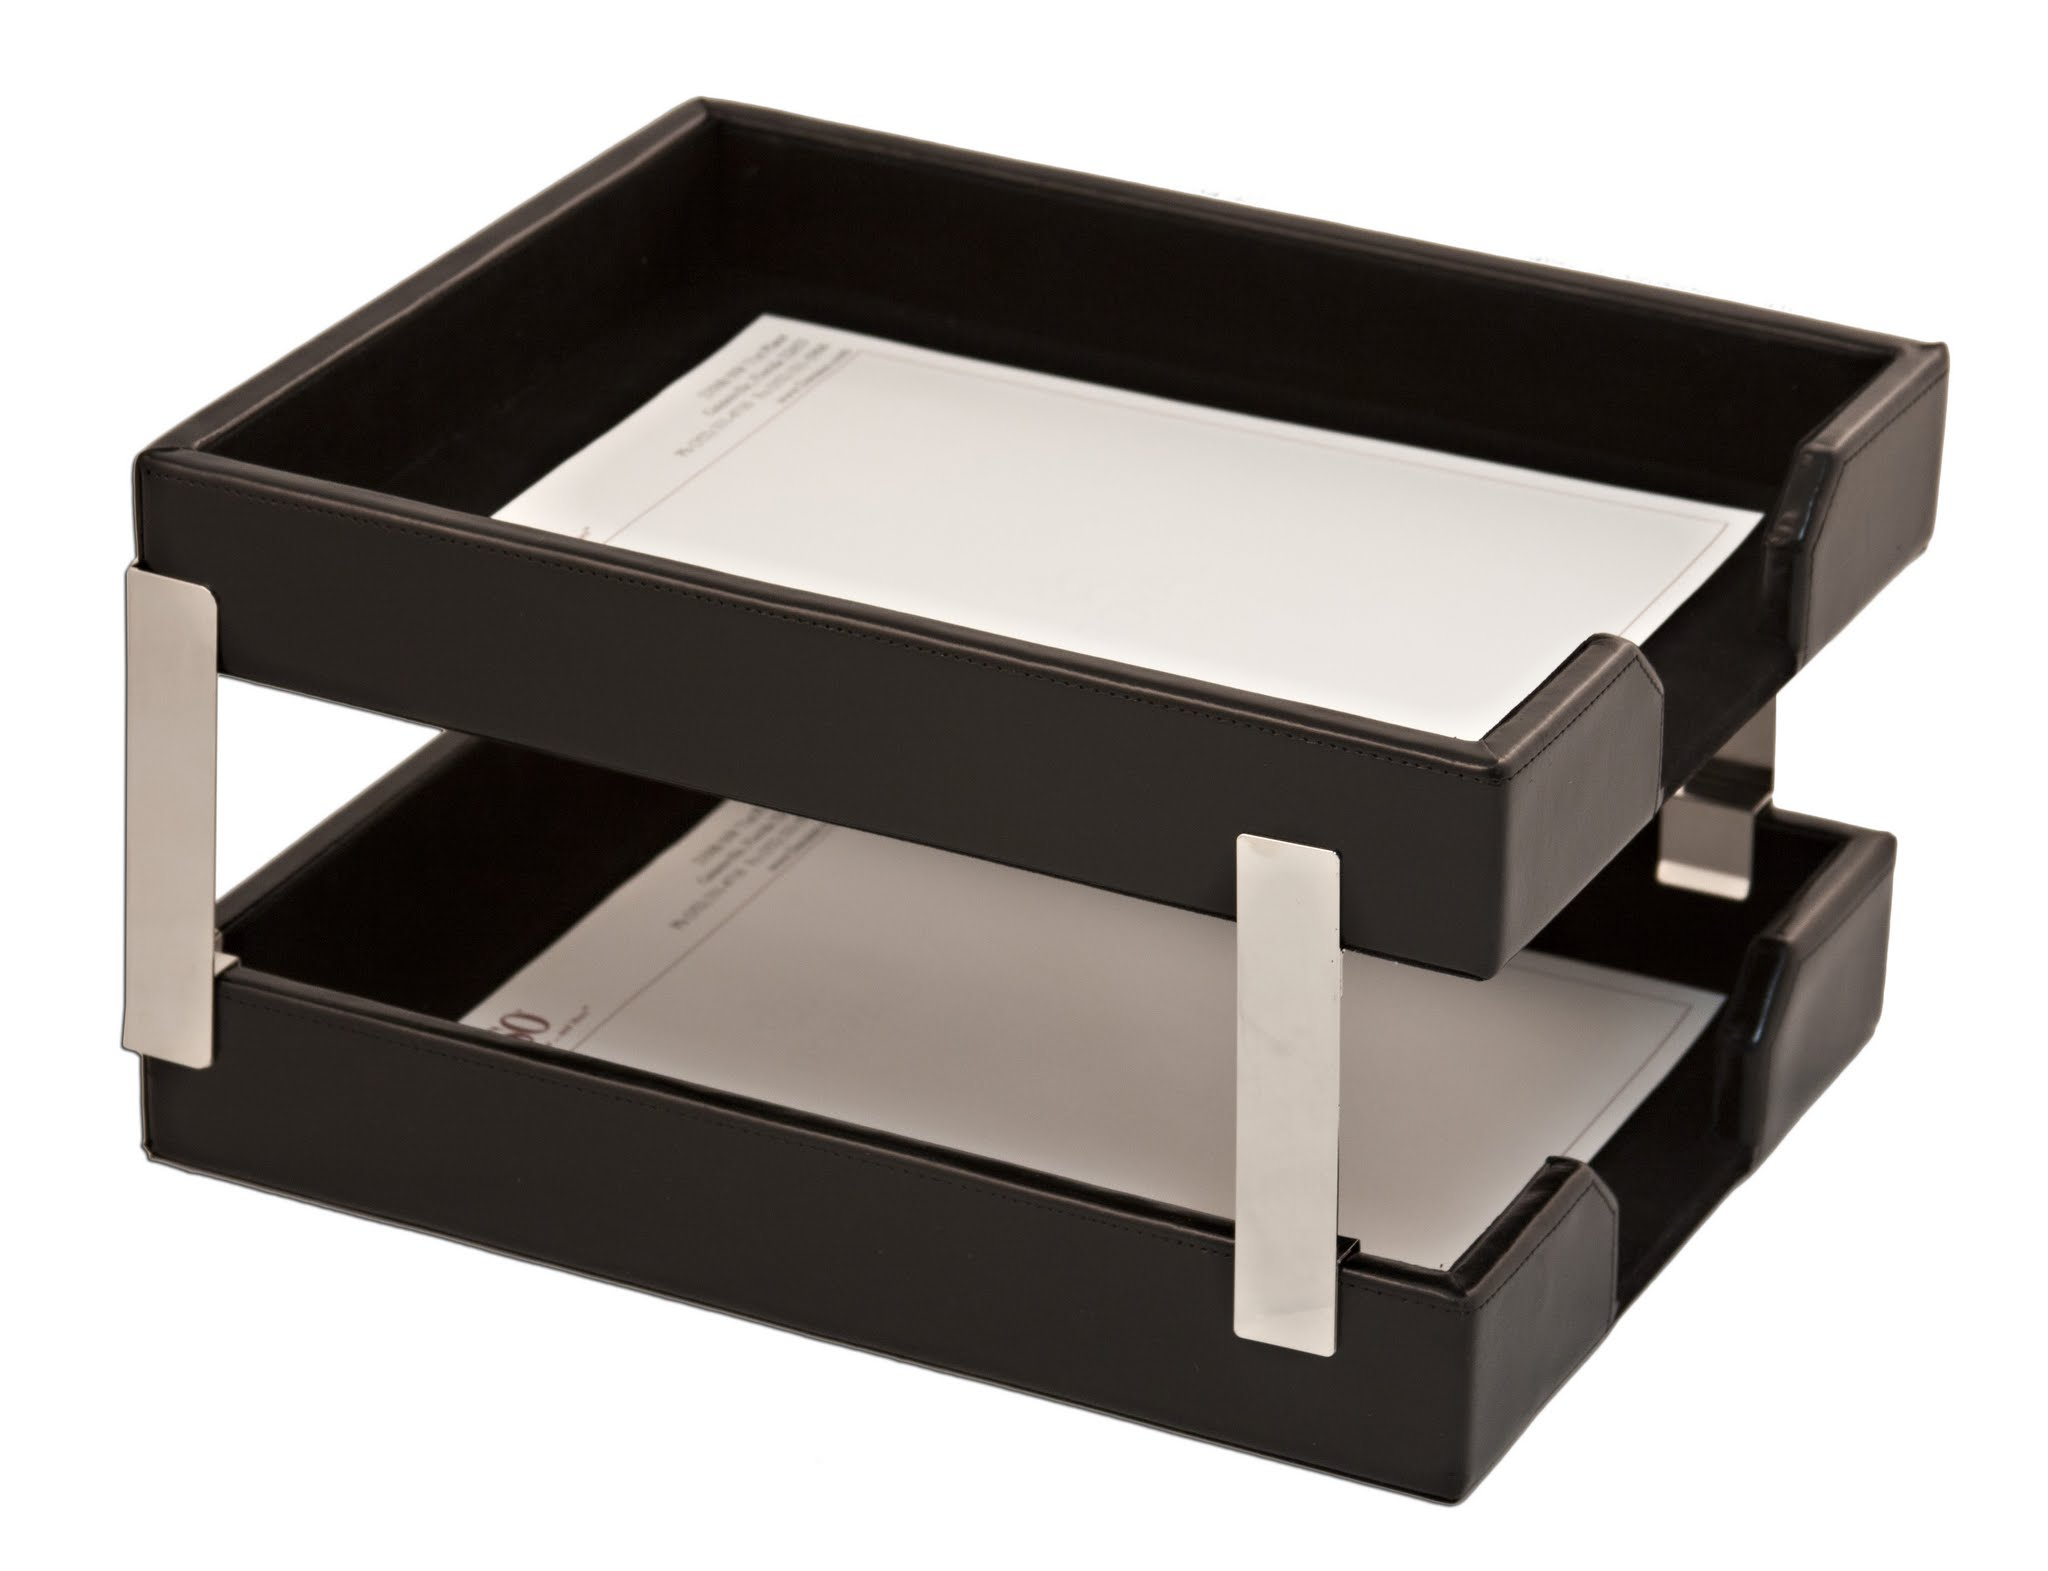 Black Bonded Leather Double Letter Trays by Dacasso